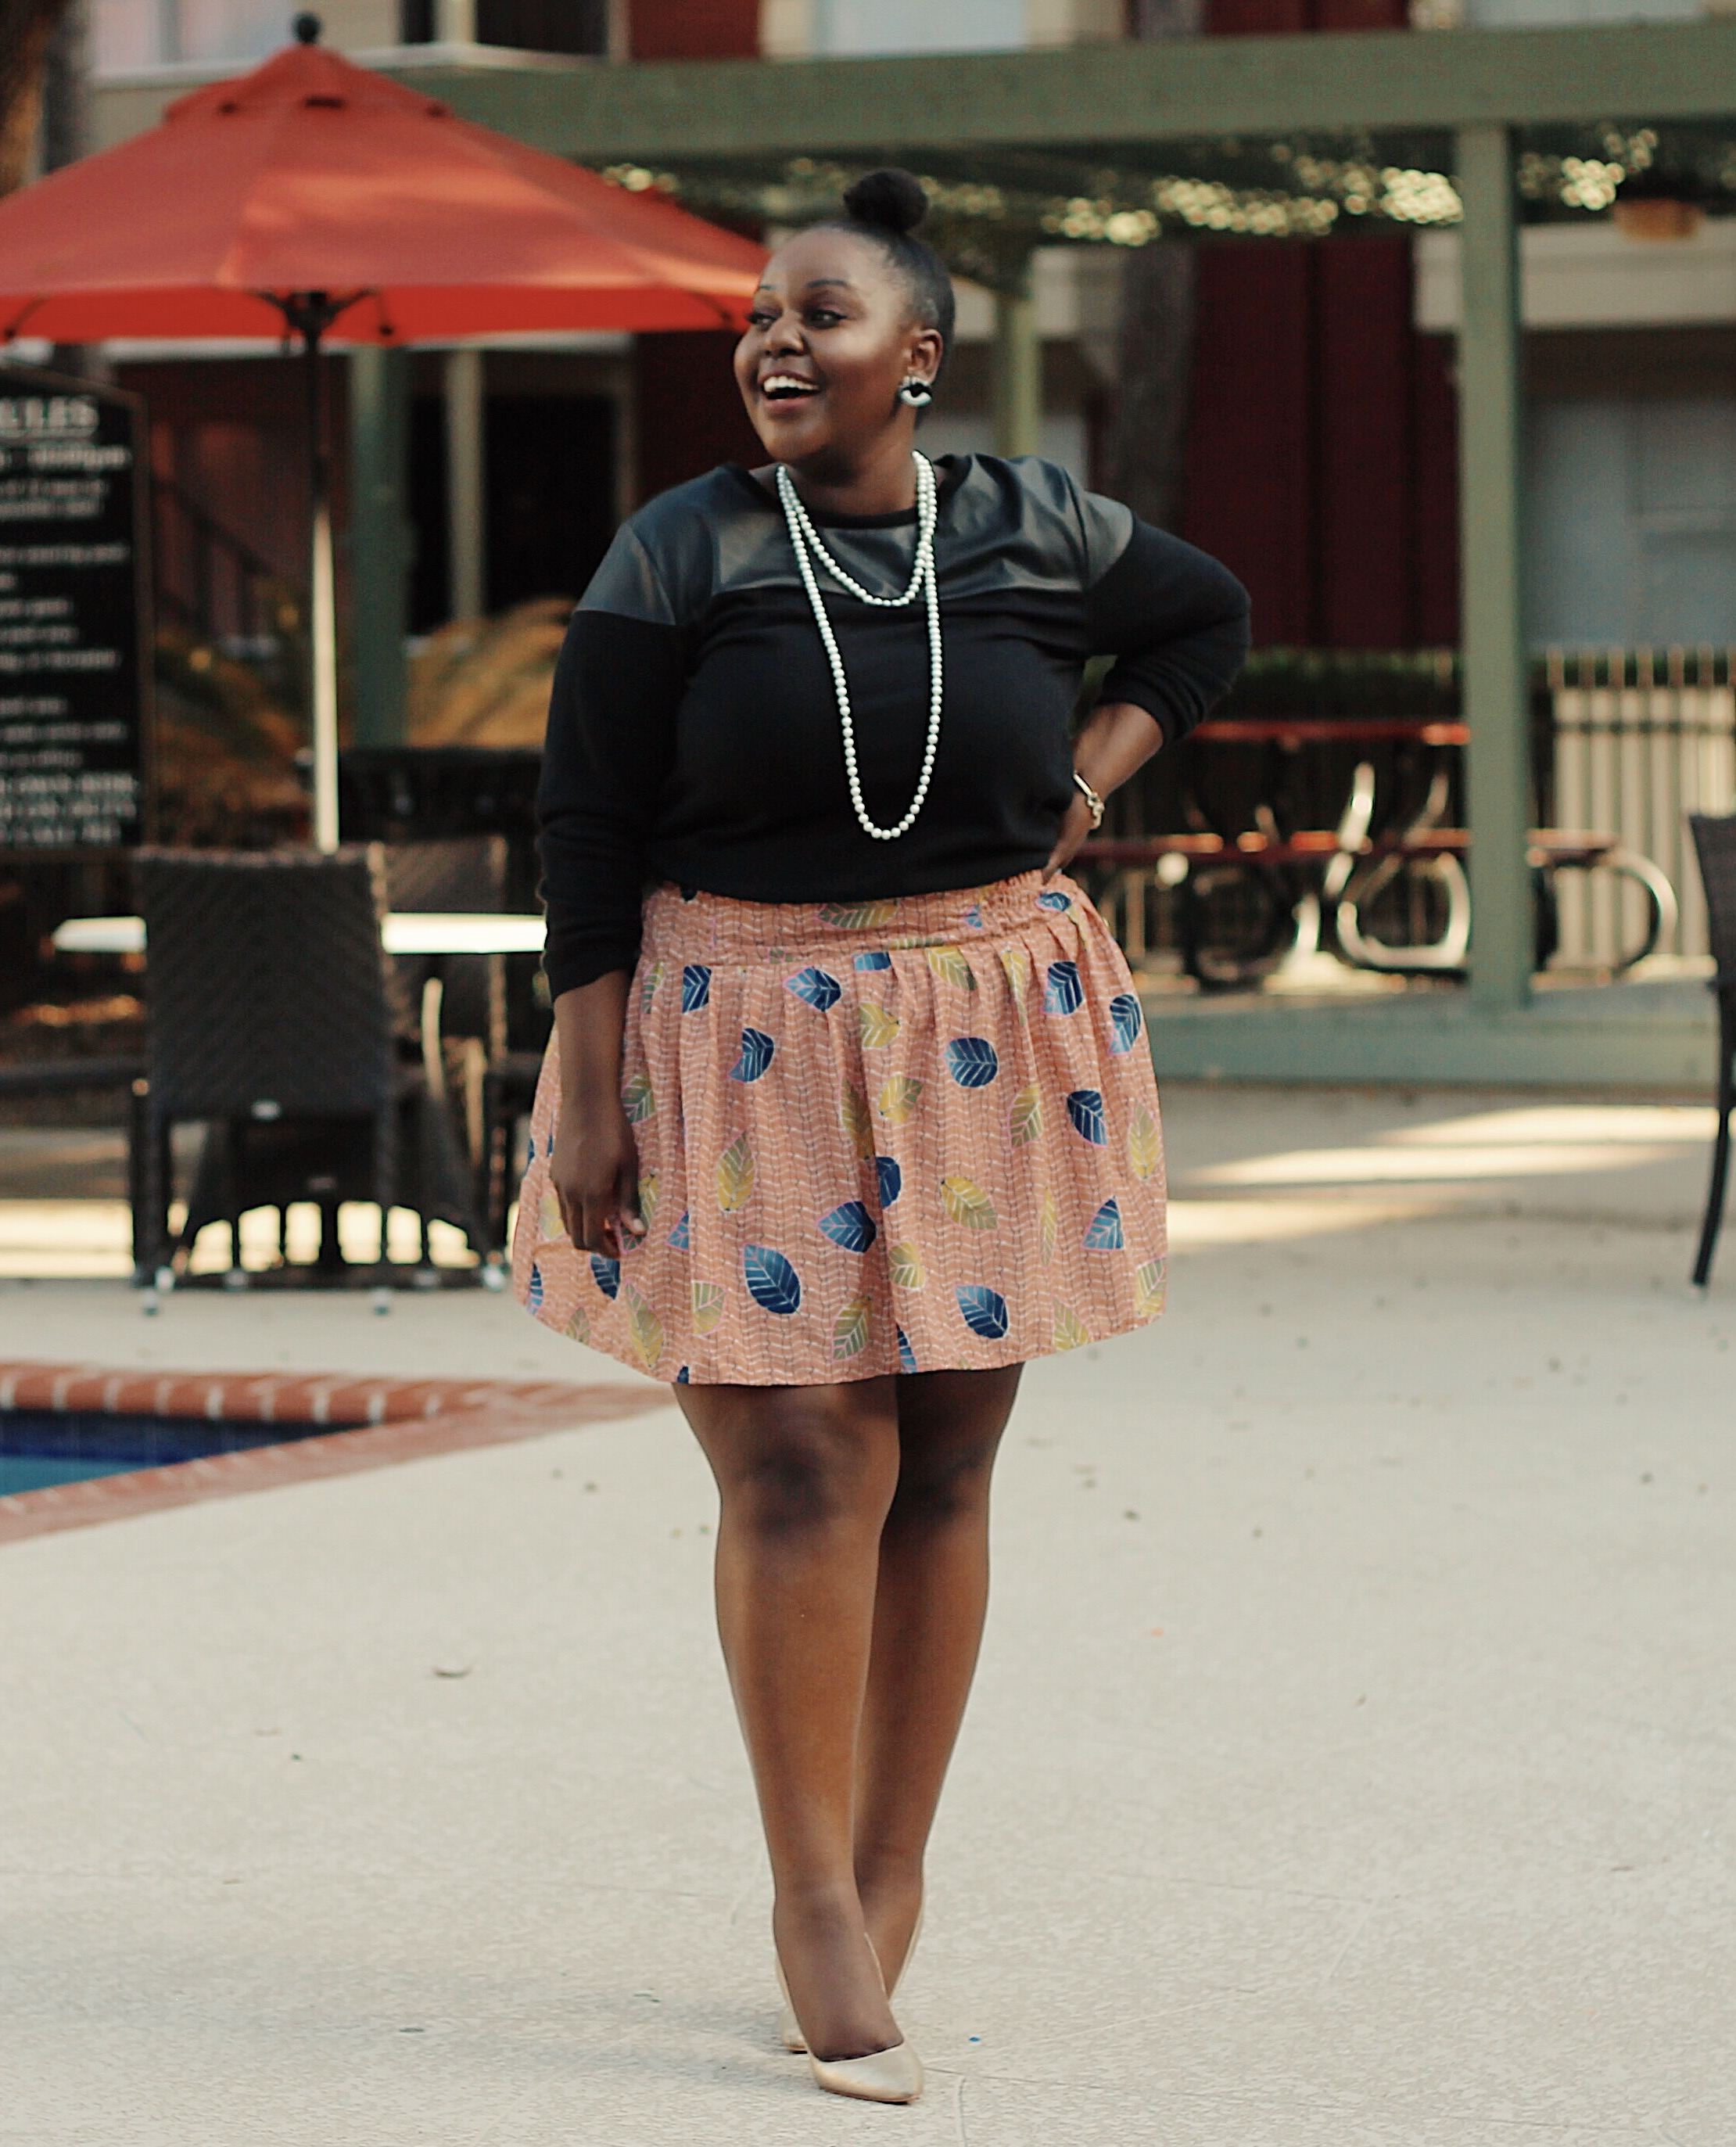 plus size fashion blogs 2017, beautiful curvy girls, how to fill the eye brow of a dark skin, beautiful plus size dark skin girls, plus size black bloggers, clothes for curvy girls, curvy girl fashion clothing, plus blog, plus size fashion tips, plus size women blog, curvy women fashion, plus blog, curvy girl fashion blog, style plus curves, plus size fashion instagram, curvy girl blog, bbw blog, plus size street fashion, plus size beauty blog, plus size fashion ideas, curvy girl summer outfits, plus size fashion magazine, plus fashion bloggers, boohoo, rebdolls bodycon maxi dresses, denim on denim